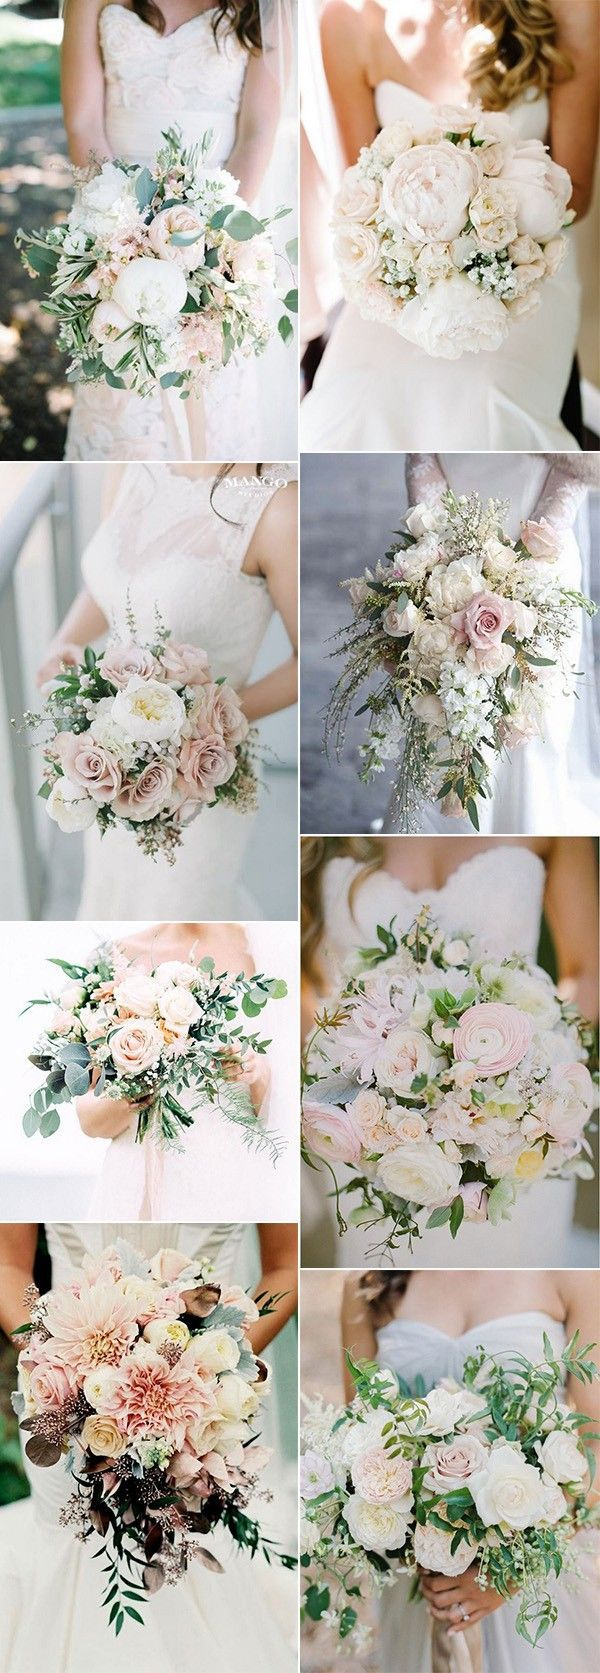 Top 15 Blush Pink Wedding Bouquets for Spring 2020 - EmmaLovesWeddings #flowerbouquetwedding